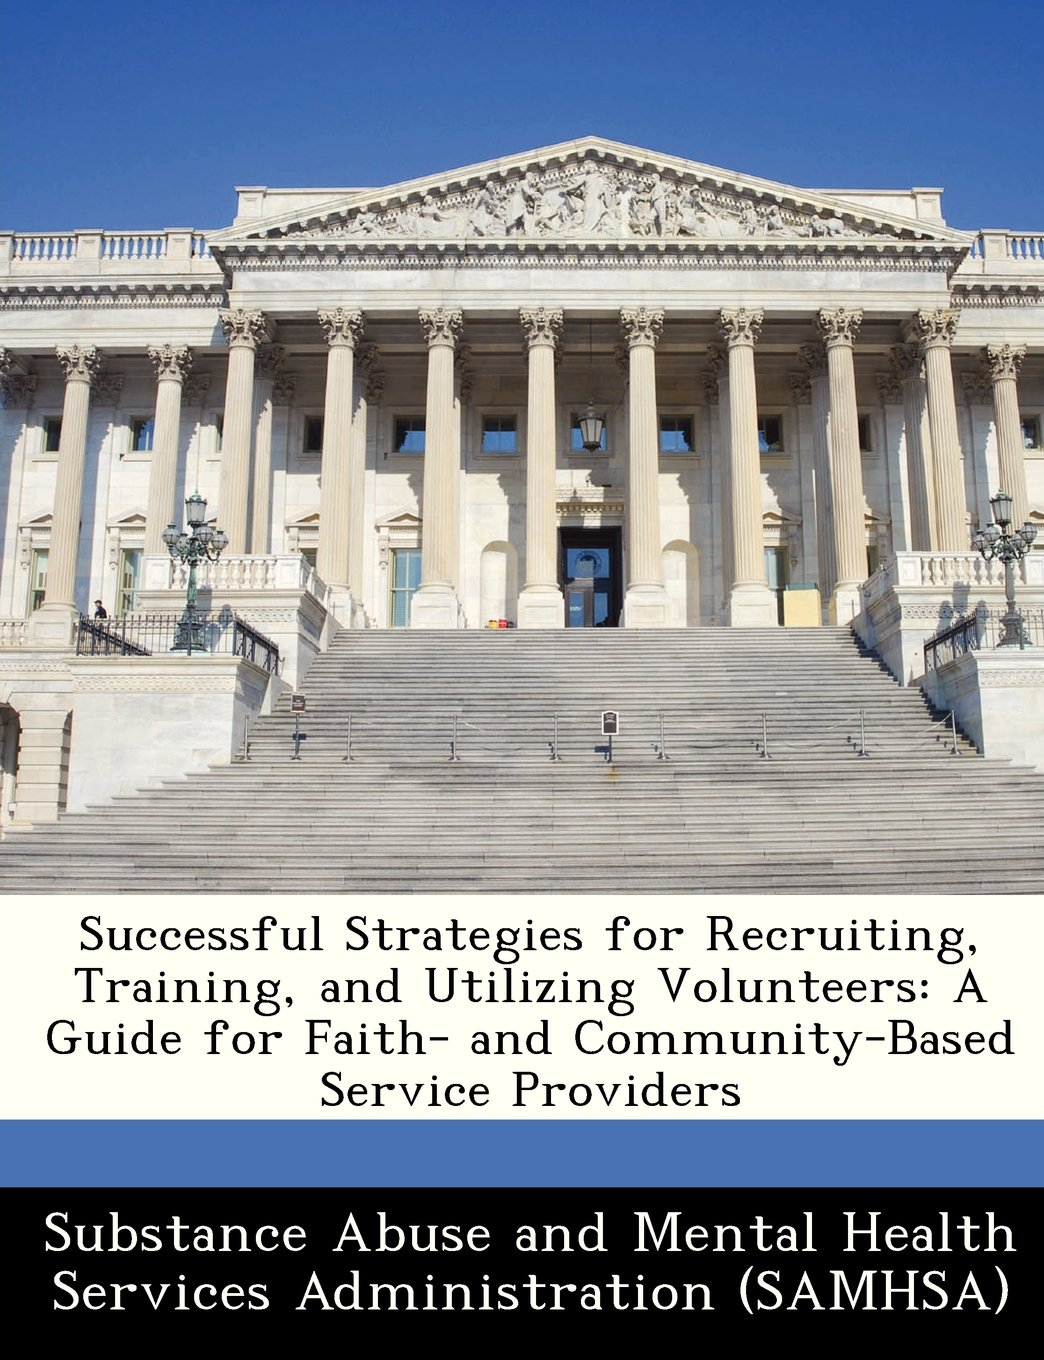 Download Successful Strategies for Recruiting, Training, and Utilizing Volunteers: A Guide for Faith- and Community-Based Service Providers PDF